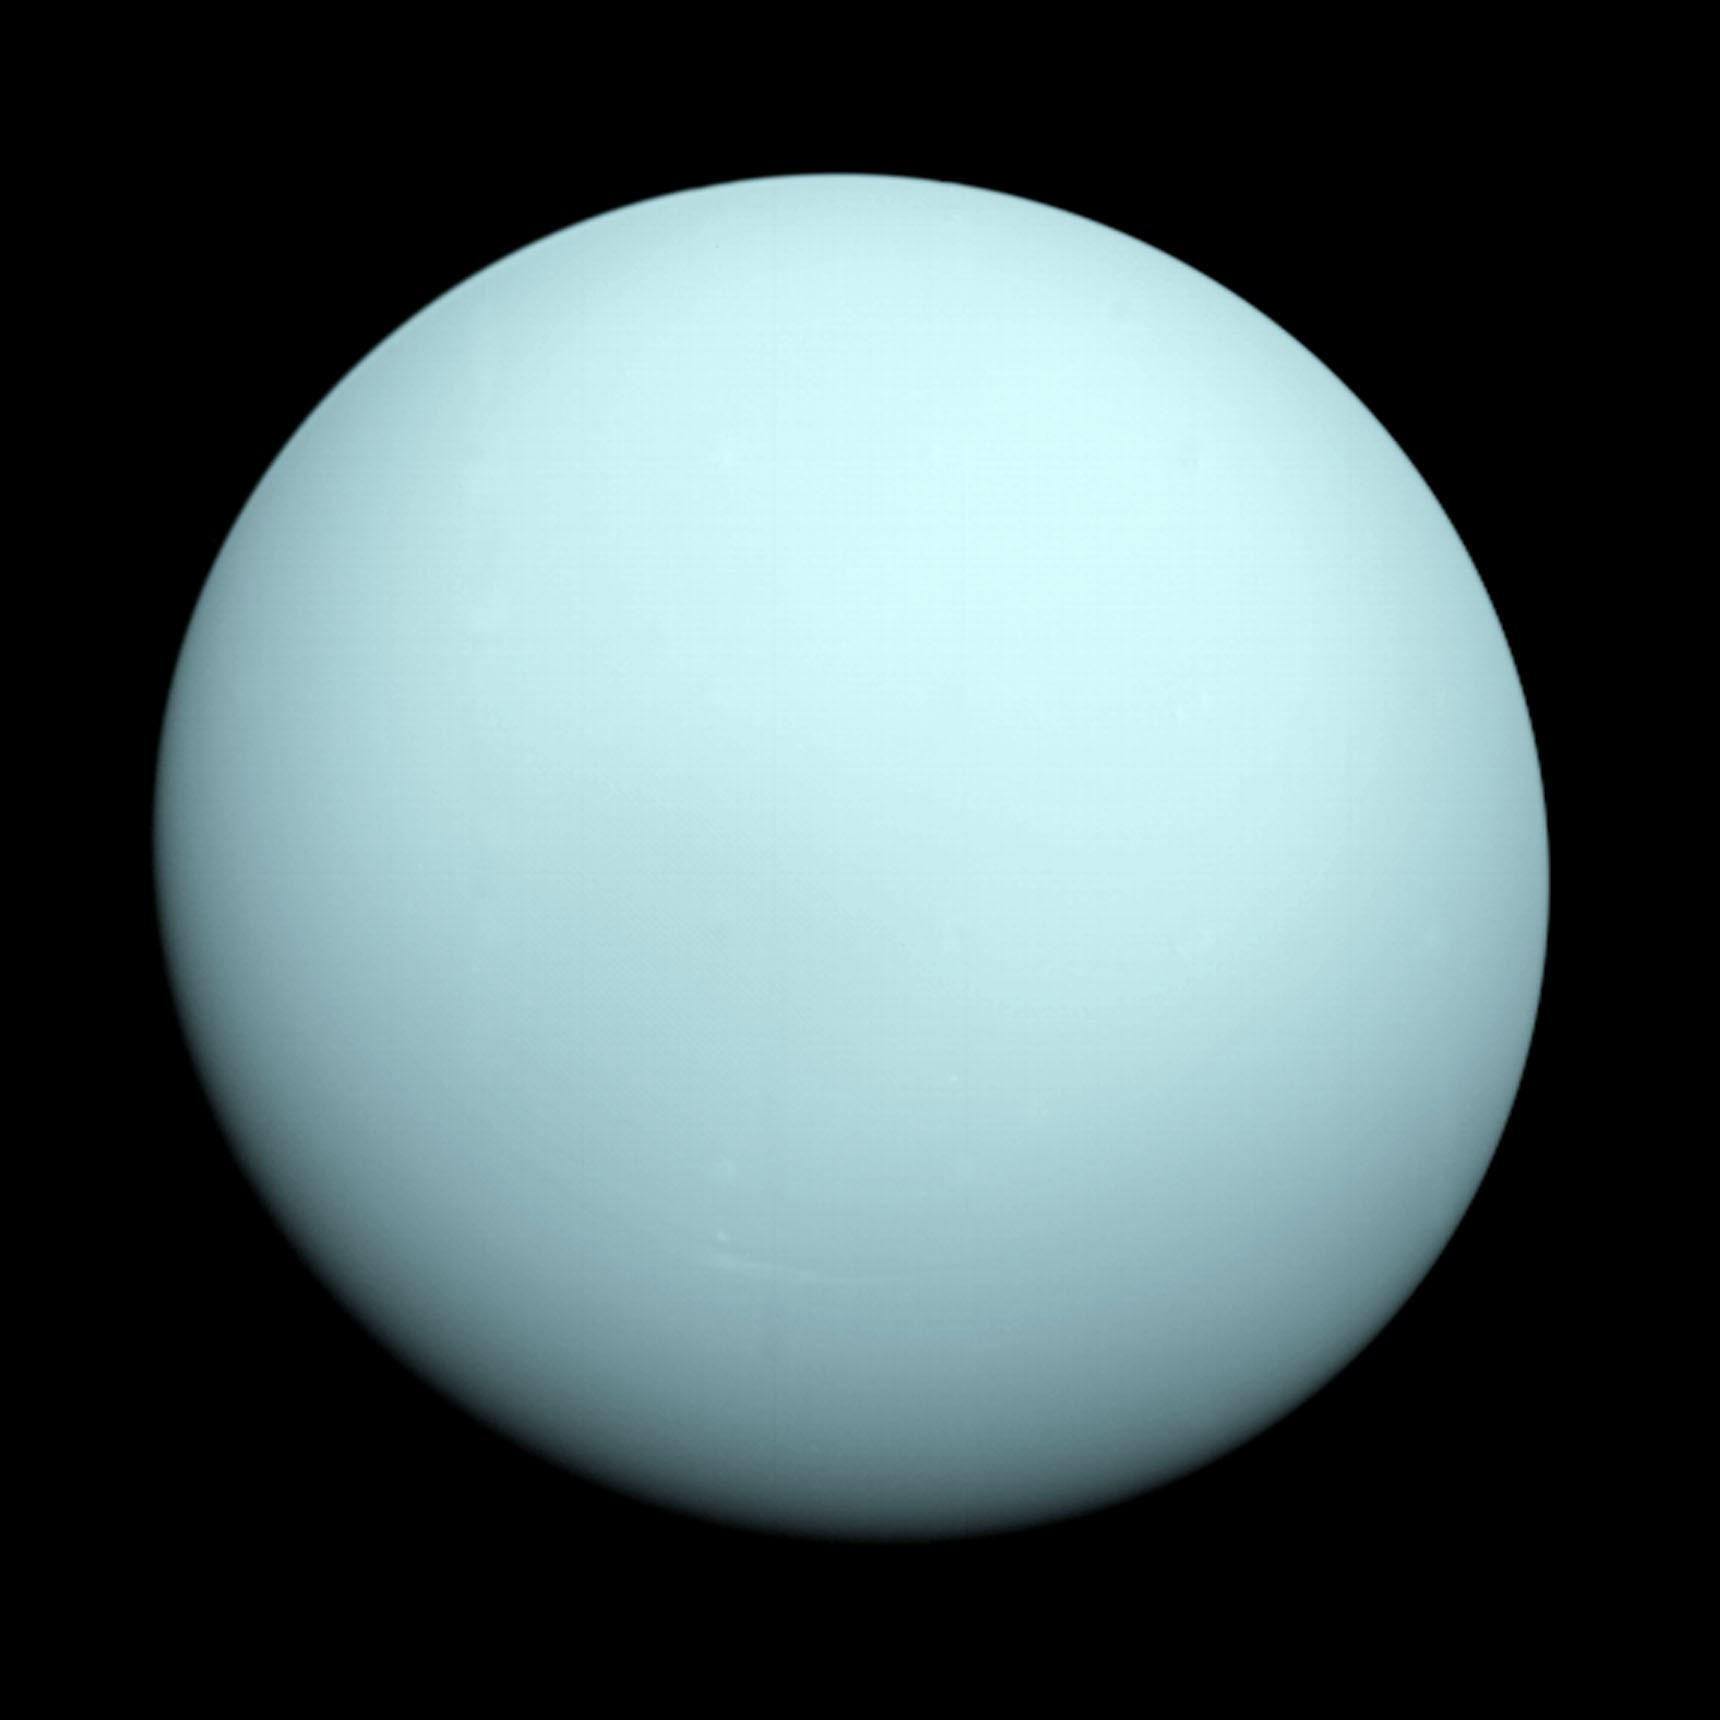 This is an image of the planet Uranus taken by the spacecraft Voyager 2 in 1986.